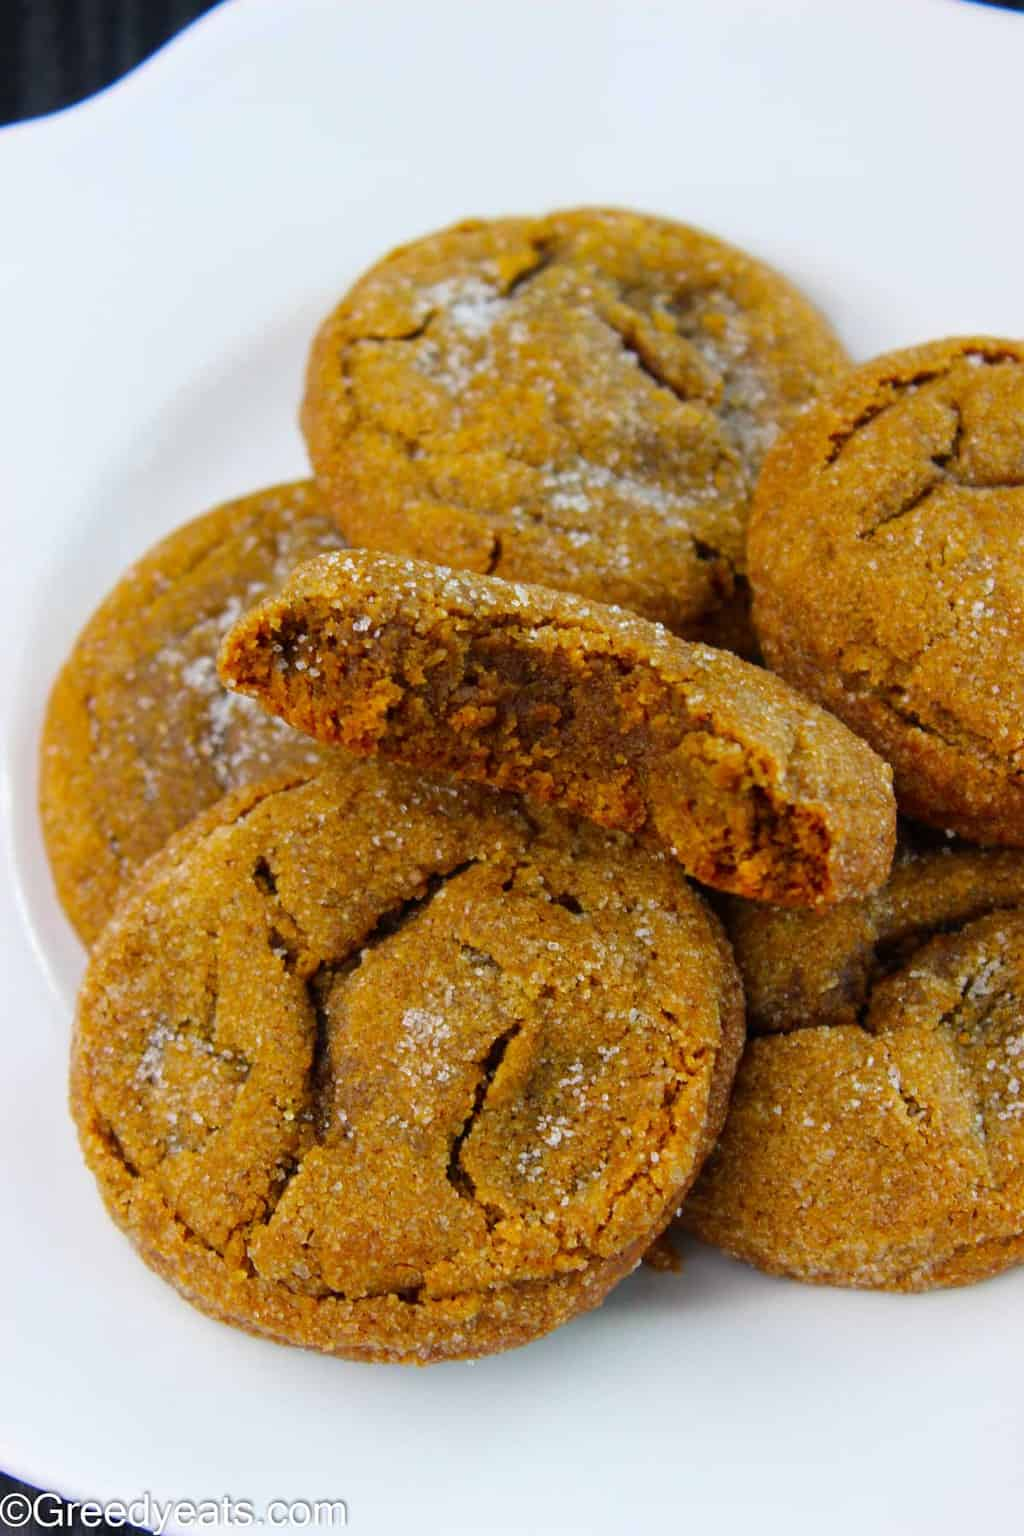 My Homemade Molasses Cookies feature crinkly tops, soft centers, chewy edges, robust molasses and warm spices flavors.